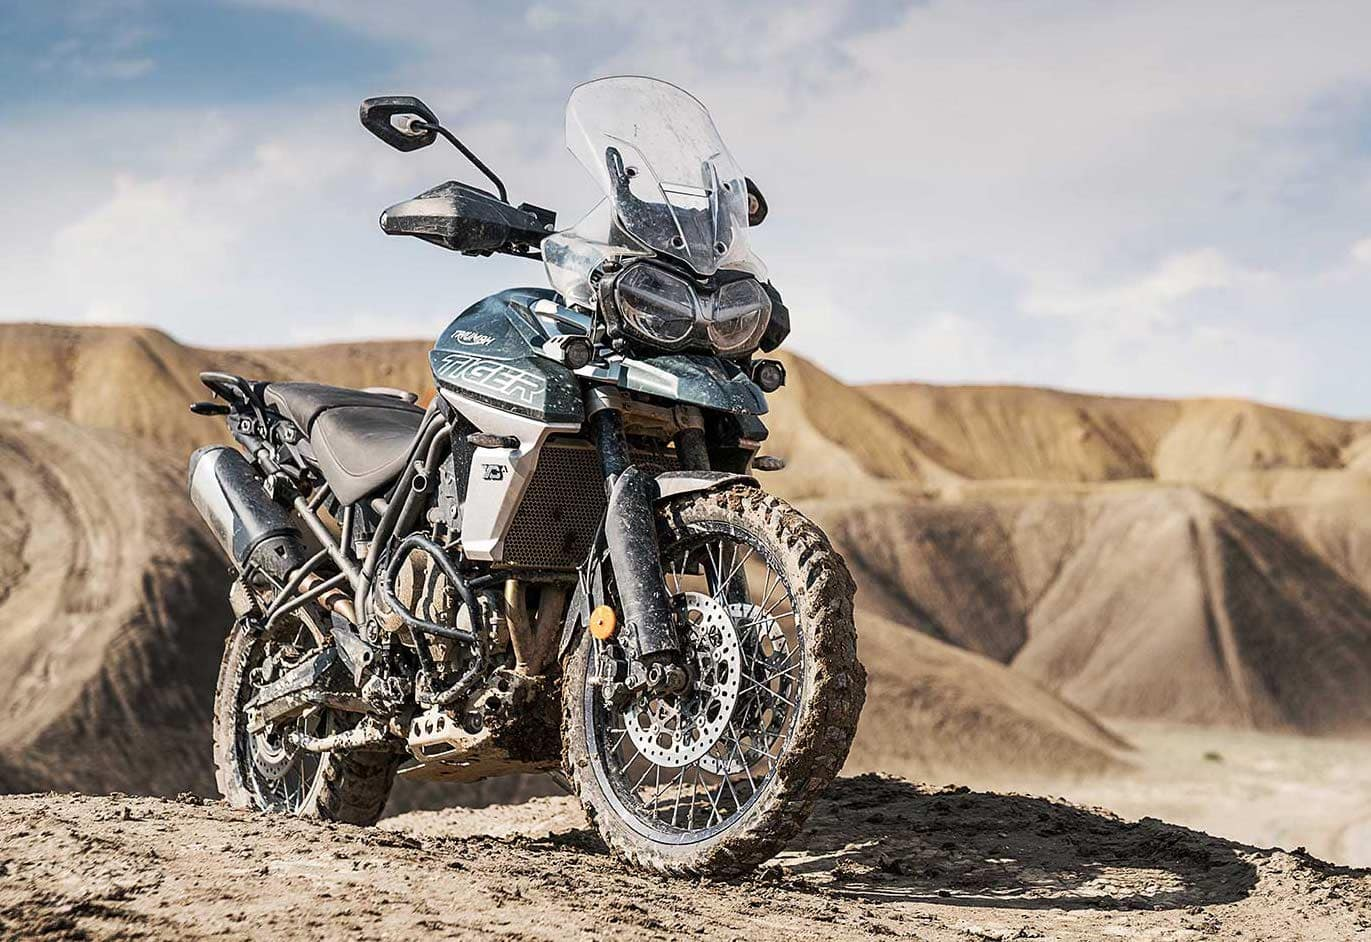 Triumph Tiger 800 XCx - a beastly alternative to the Yamaha Ténéré 700